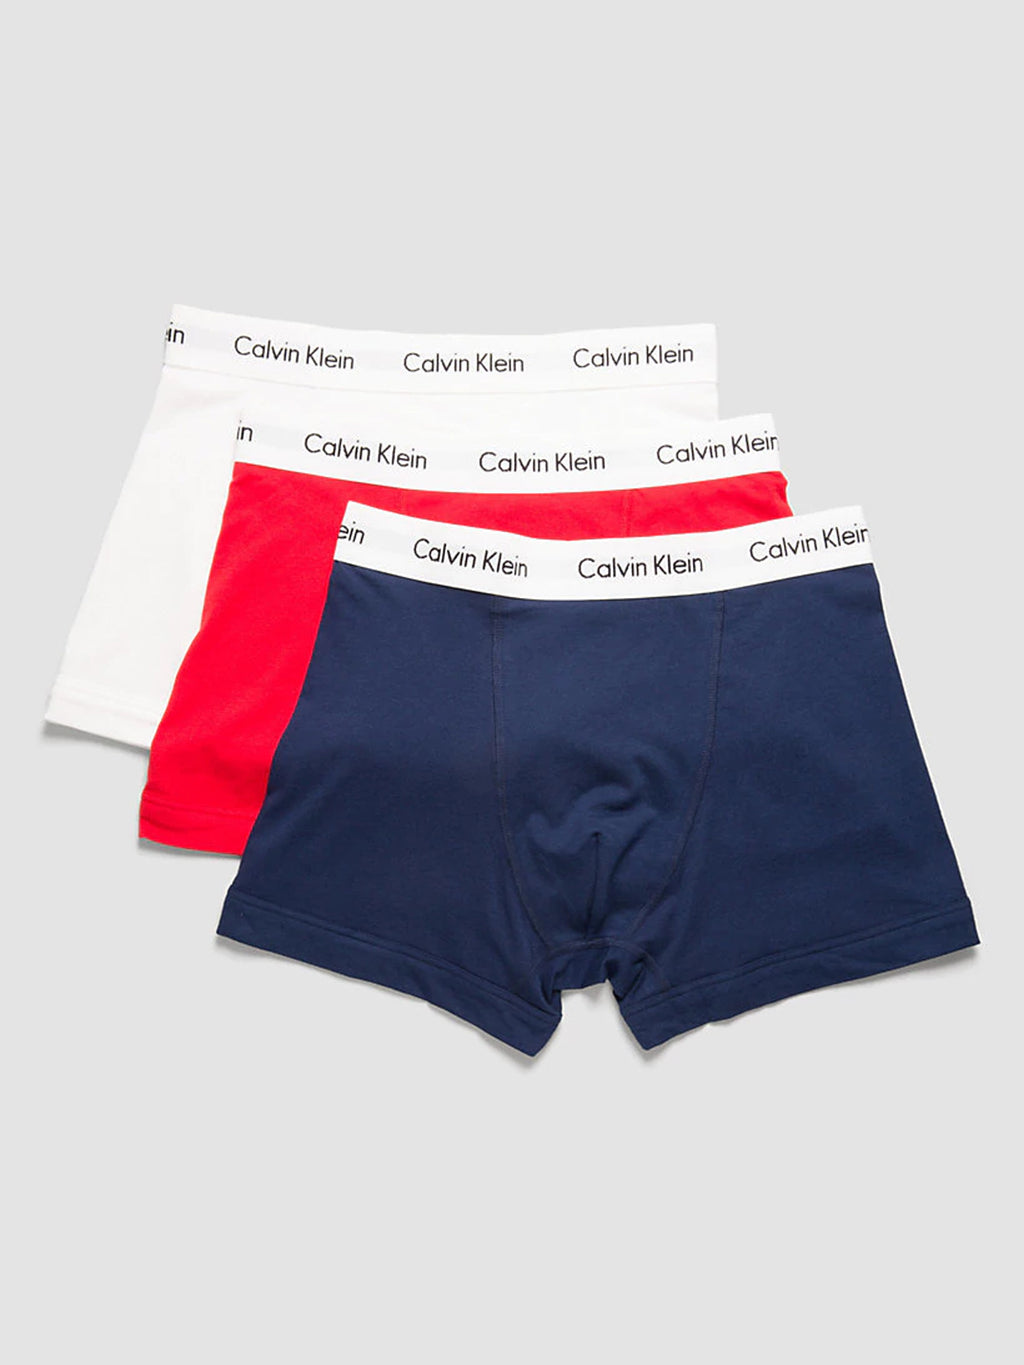 calvin klein boxers 3 pack red white blue